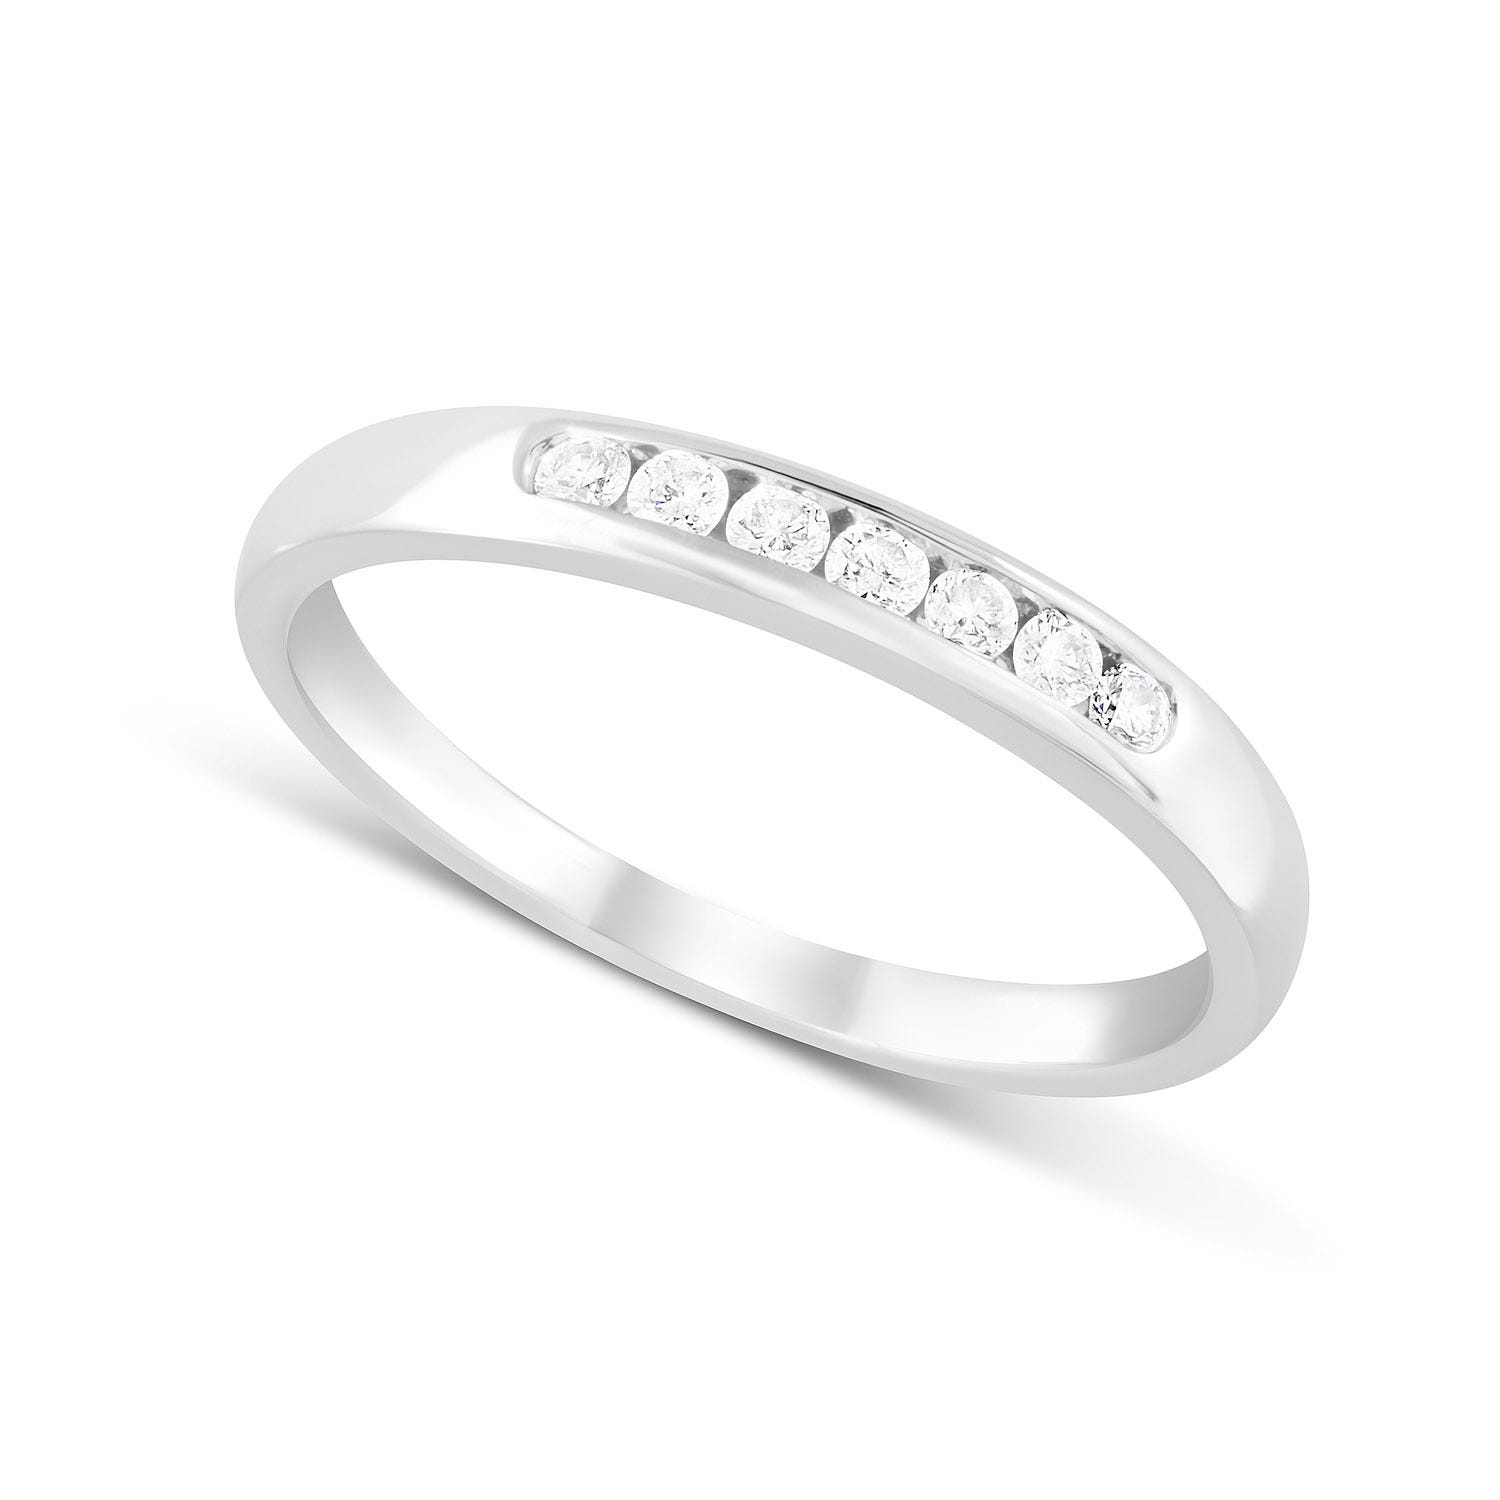 Ladies 18ct White Gold Channel Set Eternity Ring